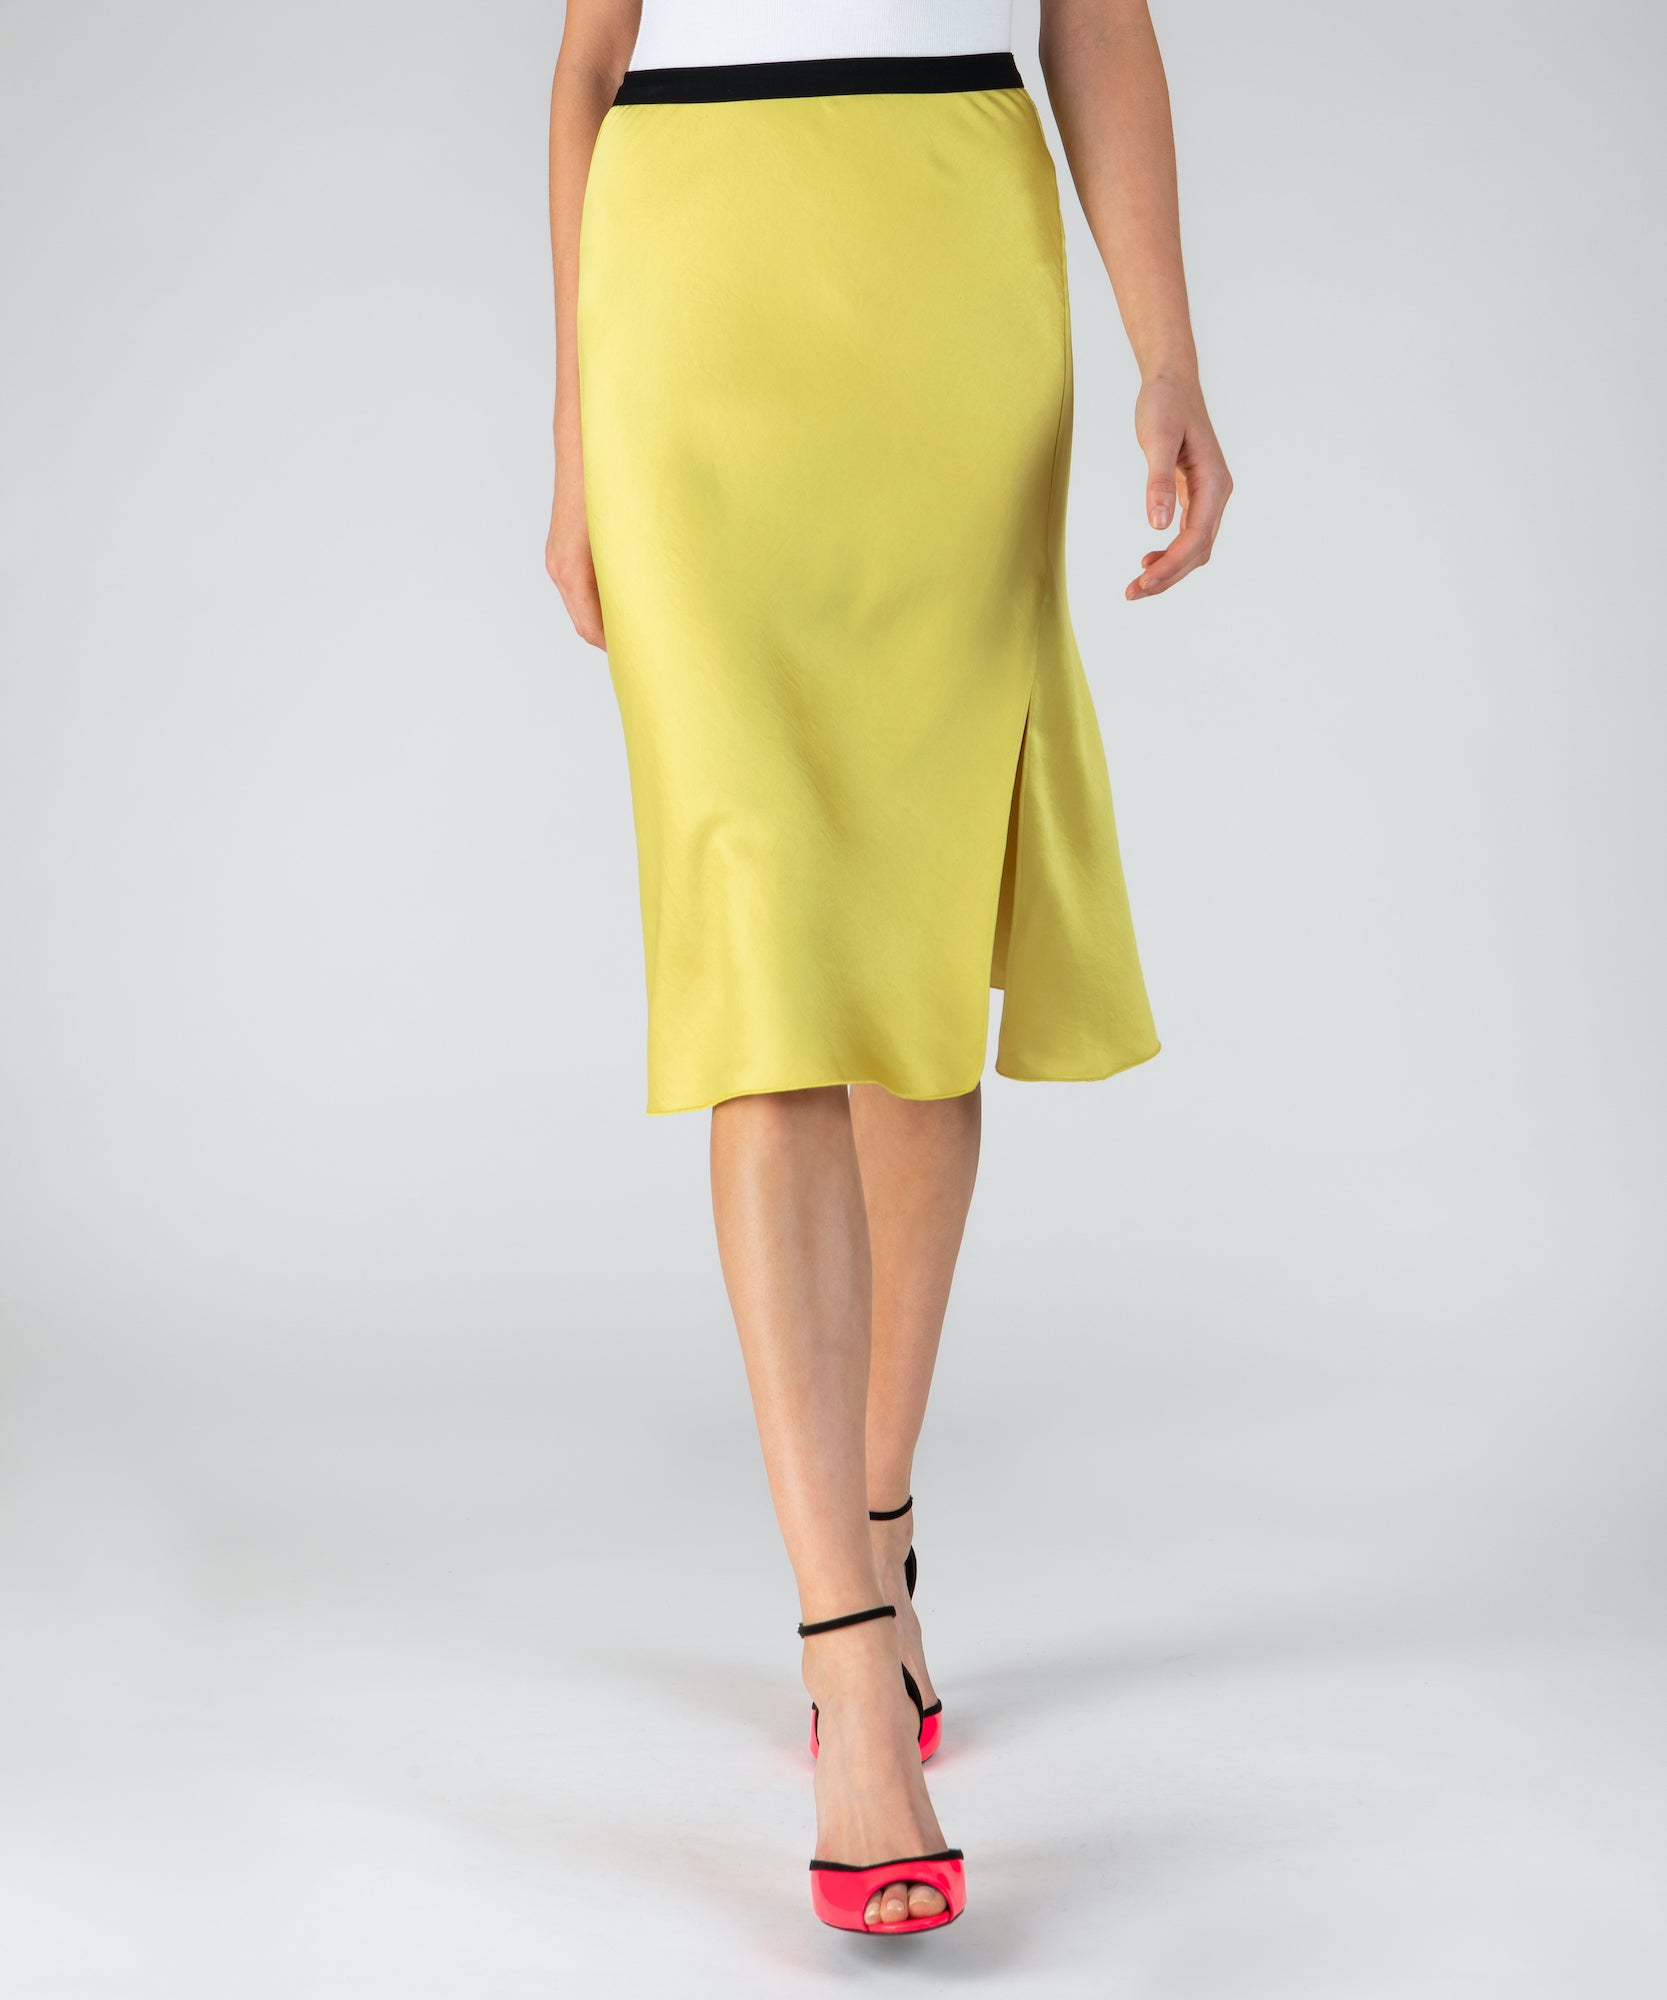 Canary Satin Crepe Skirt - Women's Skirt by ATM Anthony Thomas Melillo